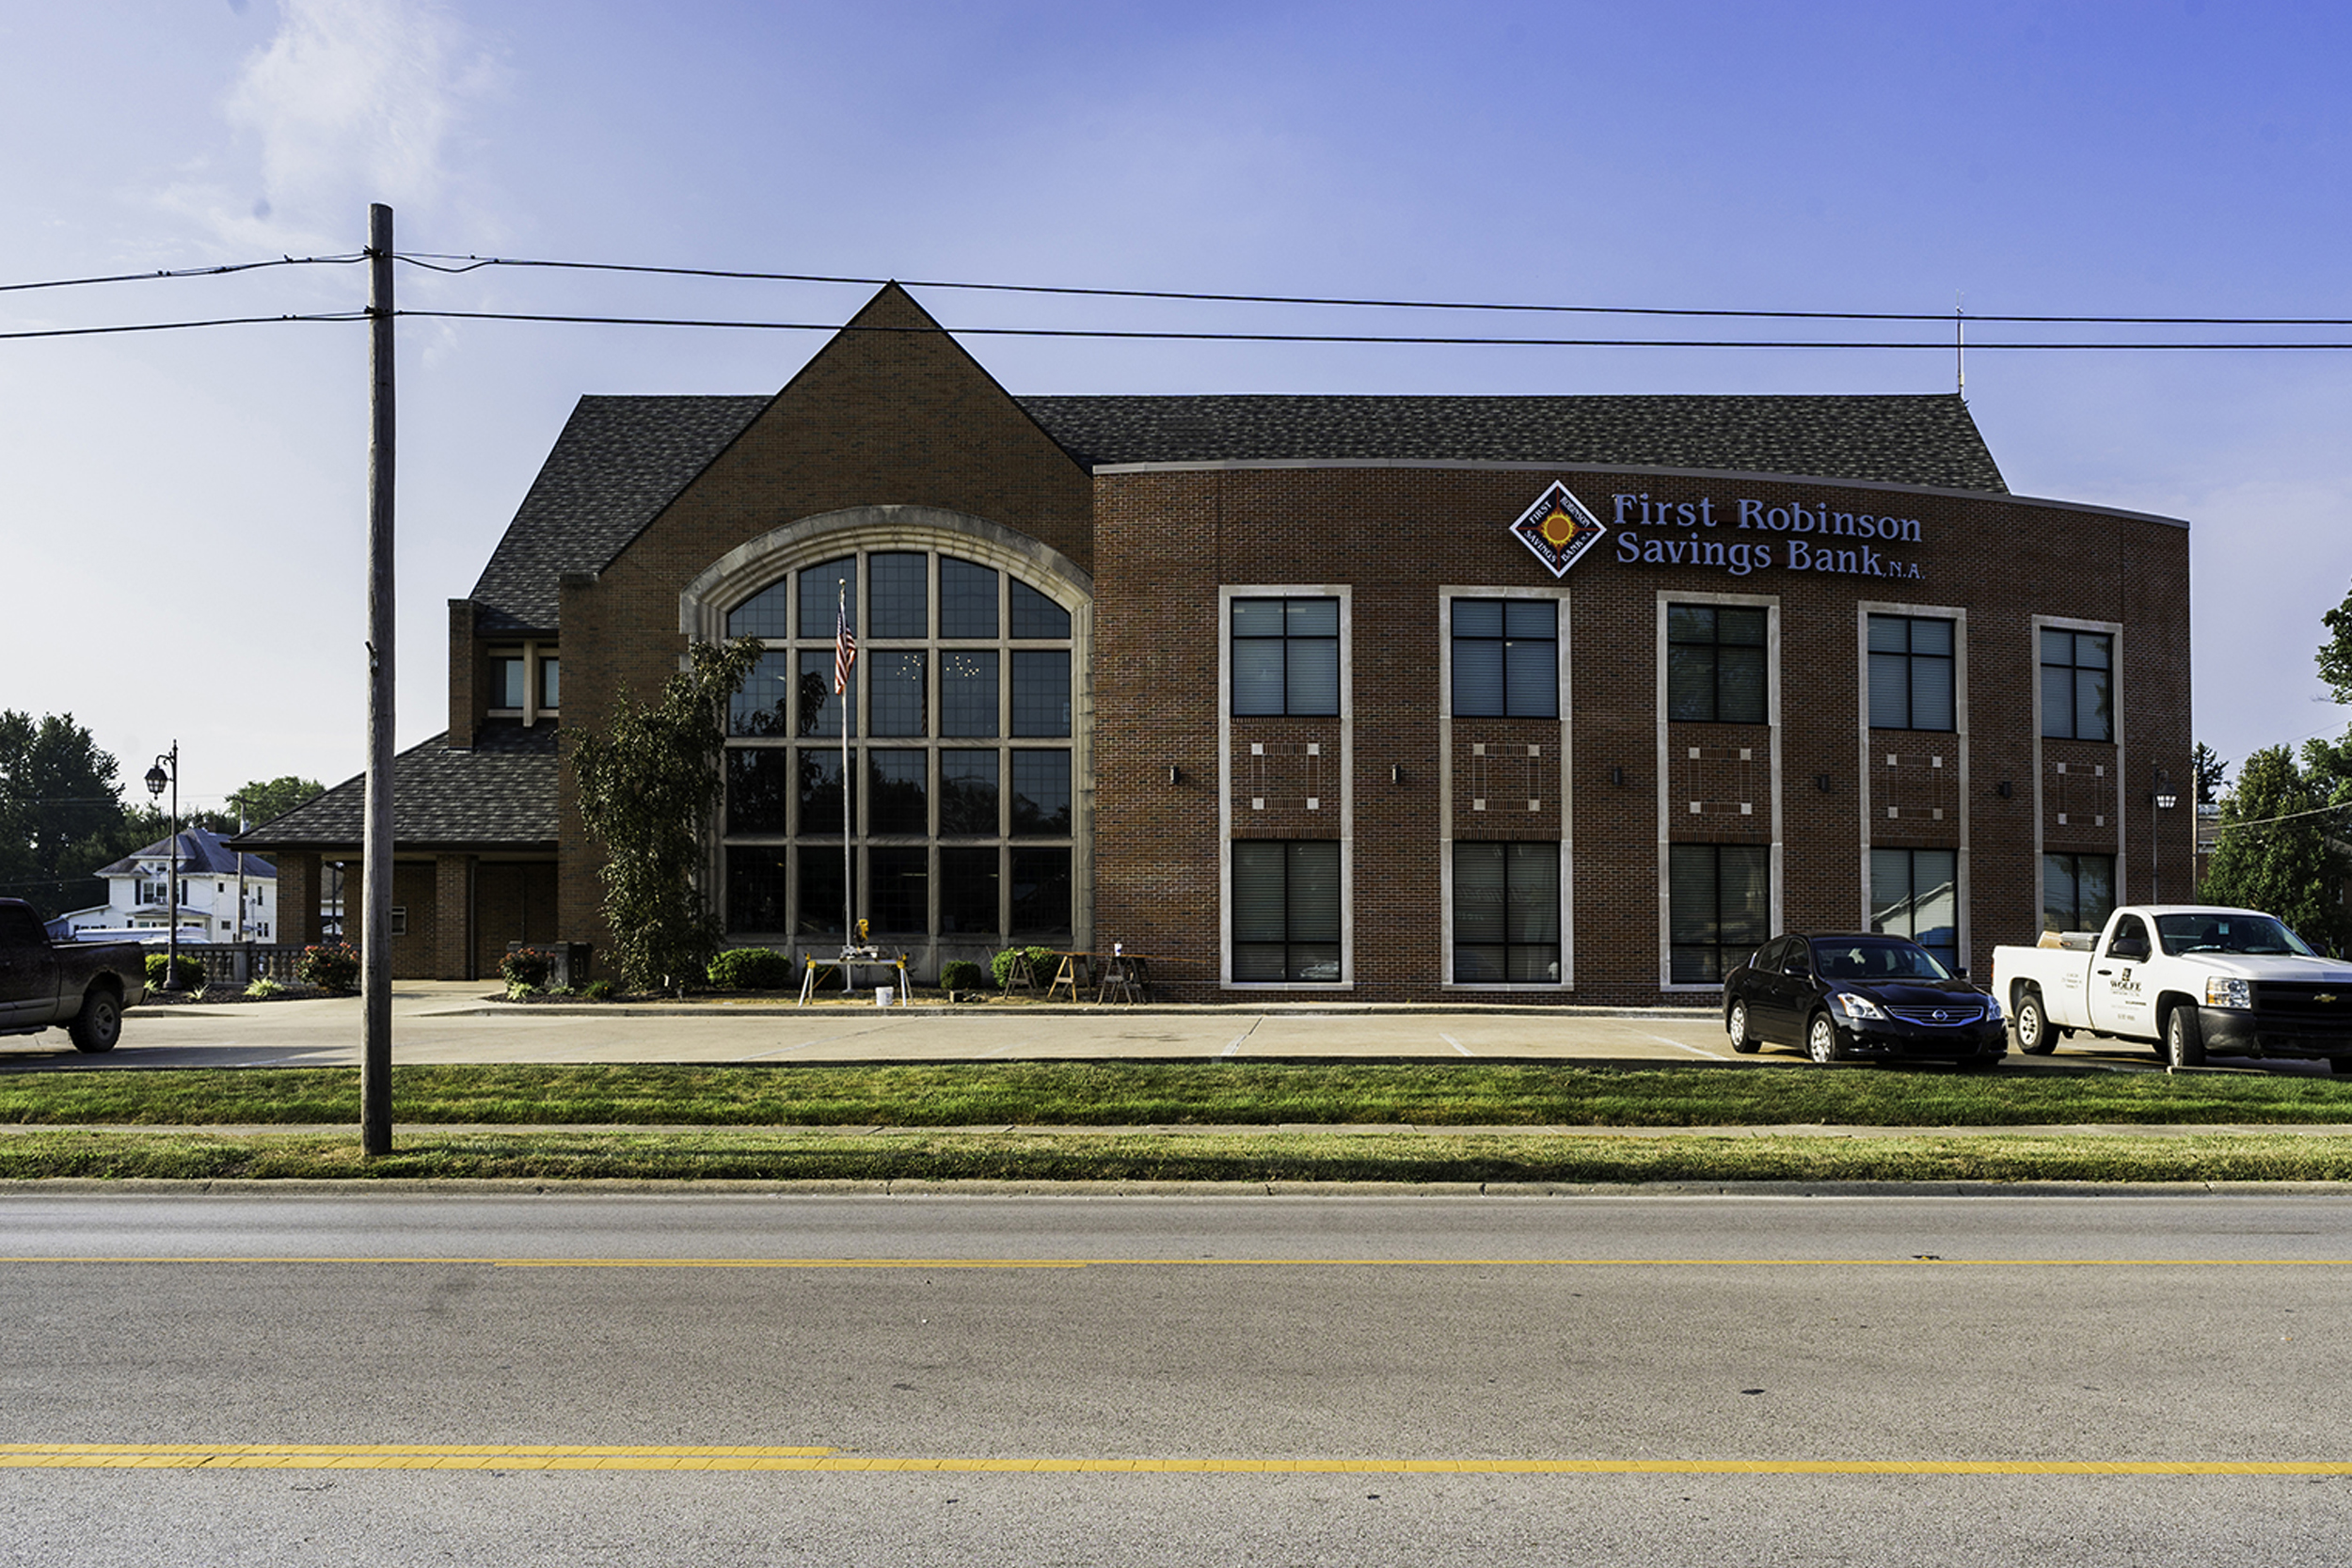 first robinson savings bank -